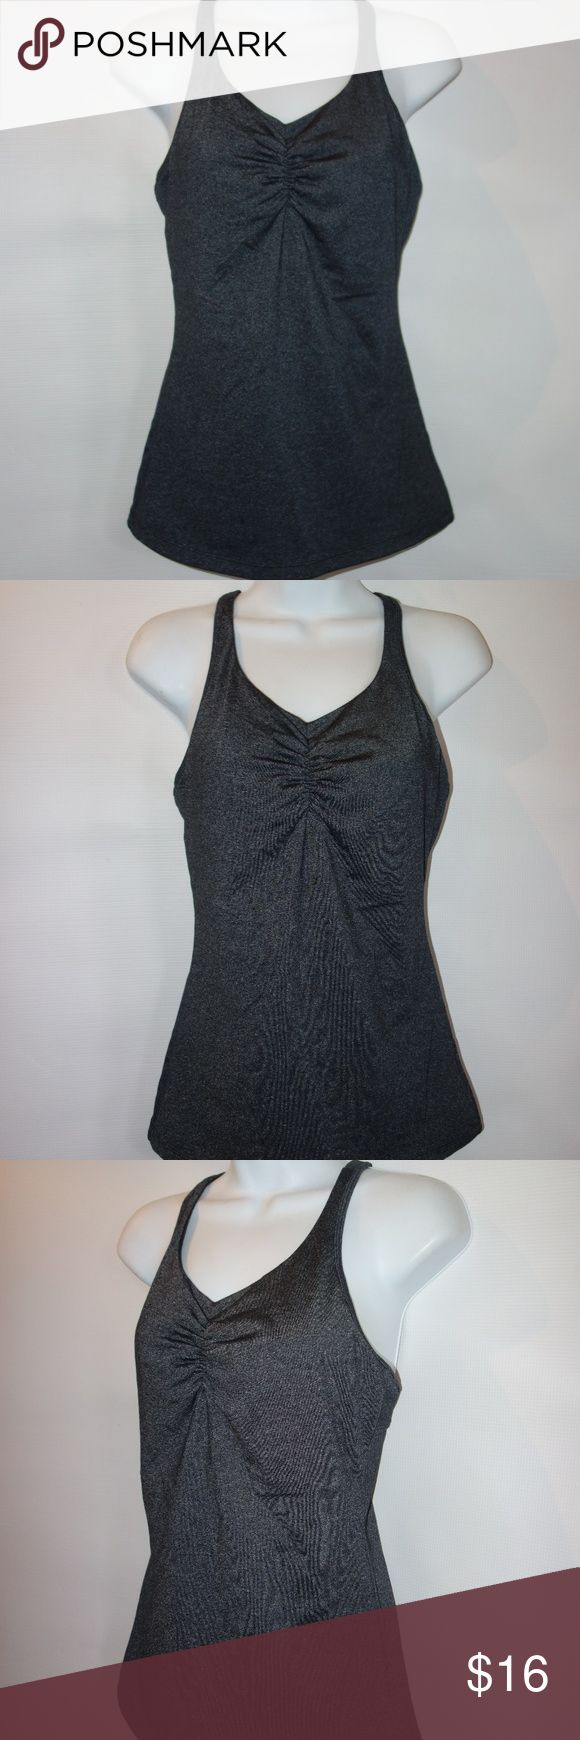 PrAna Tank Top Women M Gray Athletic Key Hole Back PrAna Tank Top Women M Gray Athletic Key Hole Back Shelf Bra T6 Preowned in great condition Dark gray in color Key hole tank racer back Built in Shelf bra Gathered front Perfect for athletic or casual wear No rips, tears or stains I have other items like this listed Thank you for looking! prAna Tops Tank Tops